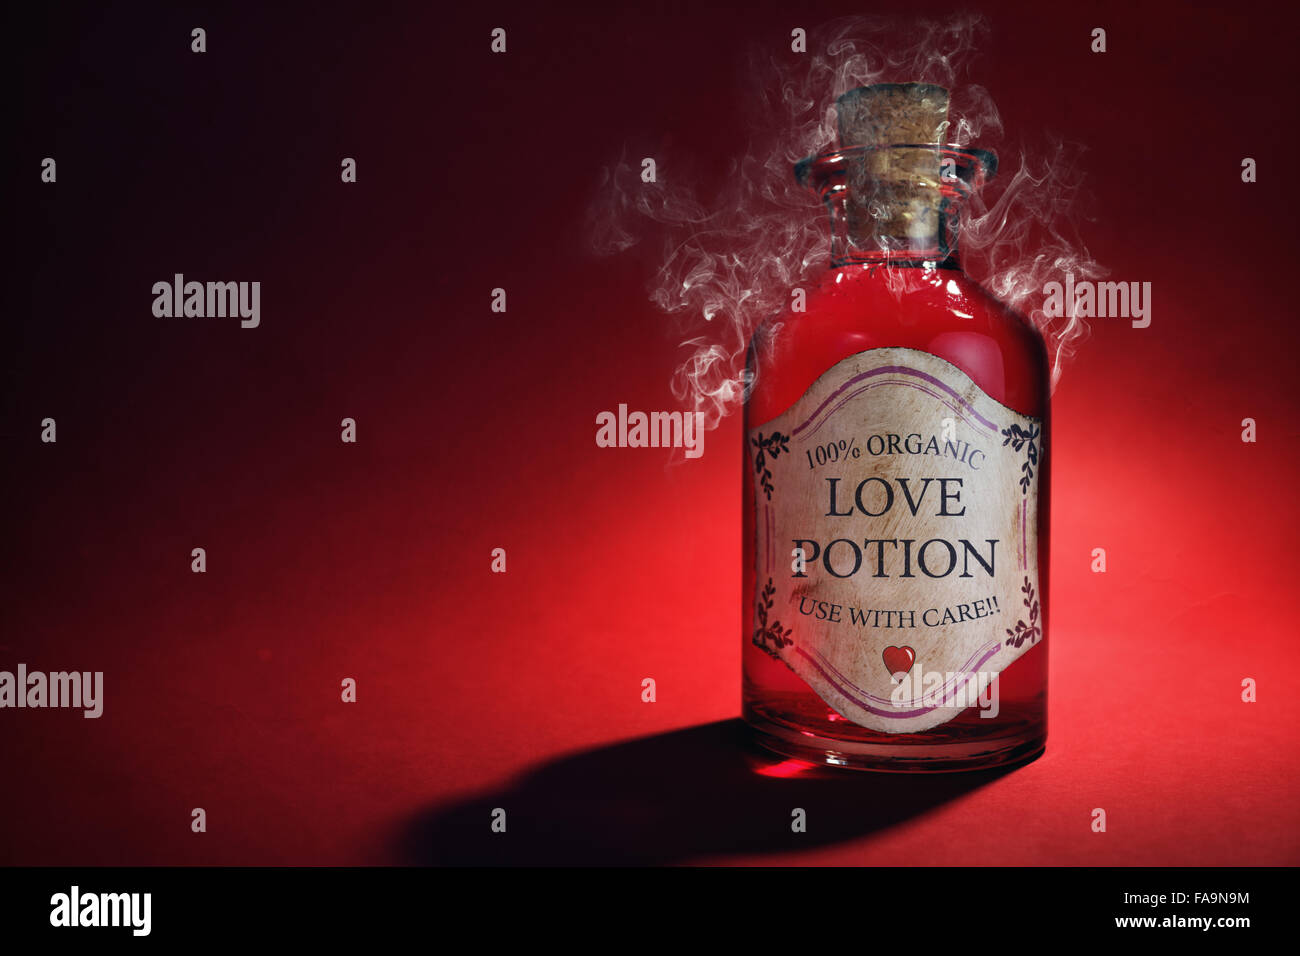 Love Potion bottle Photo Stock